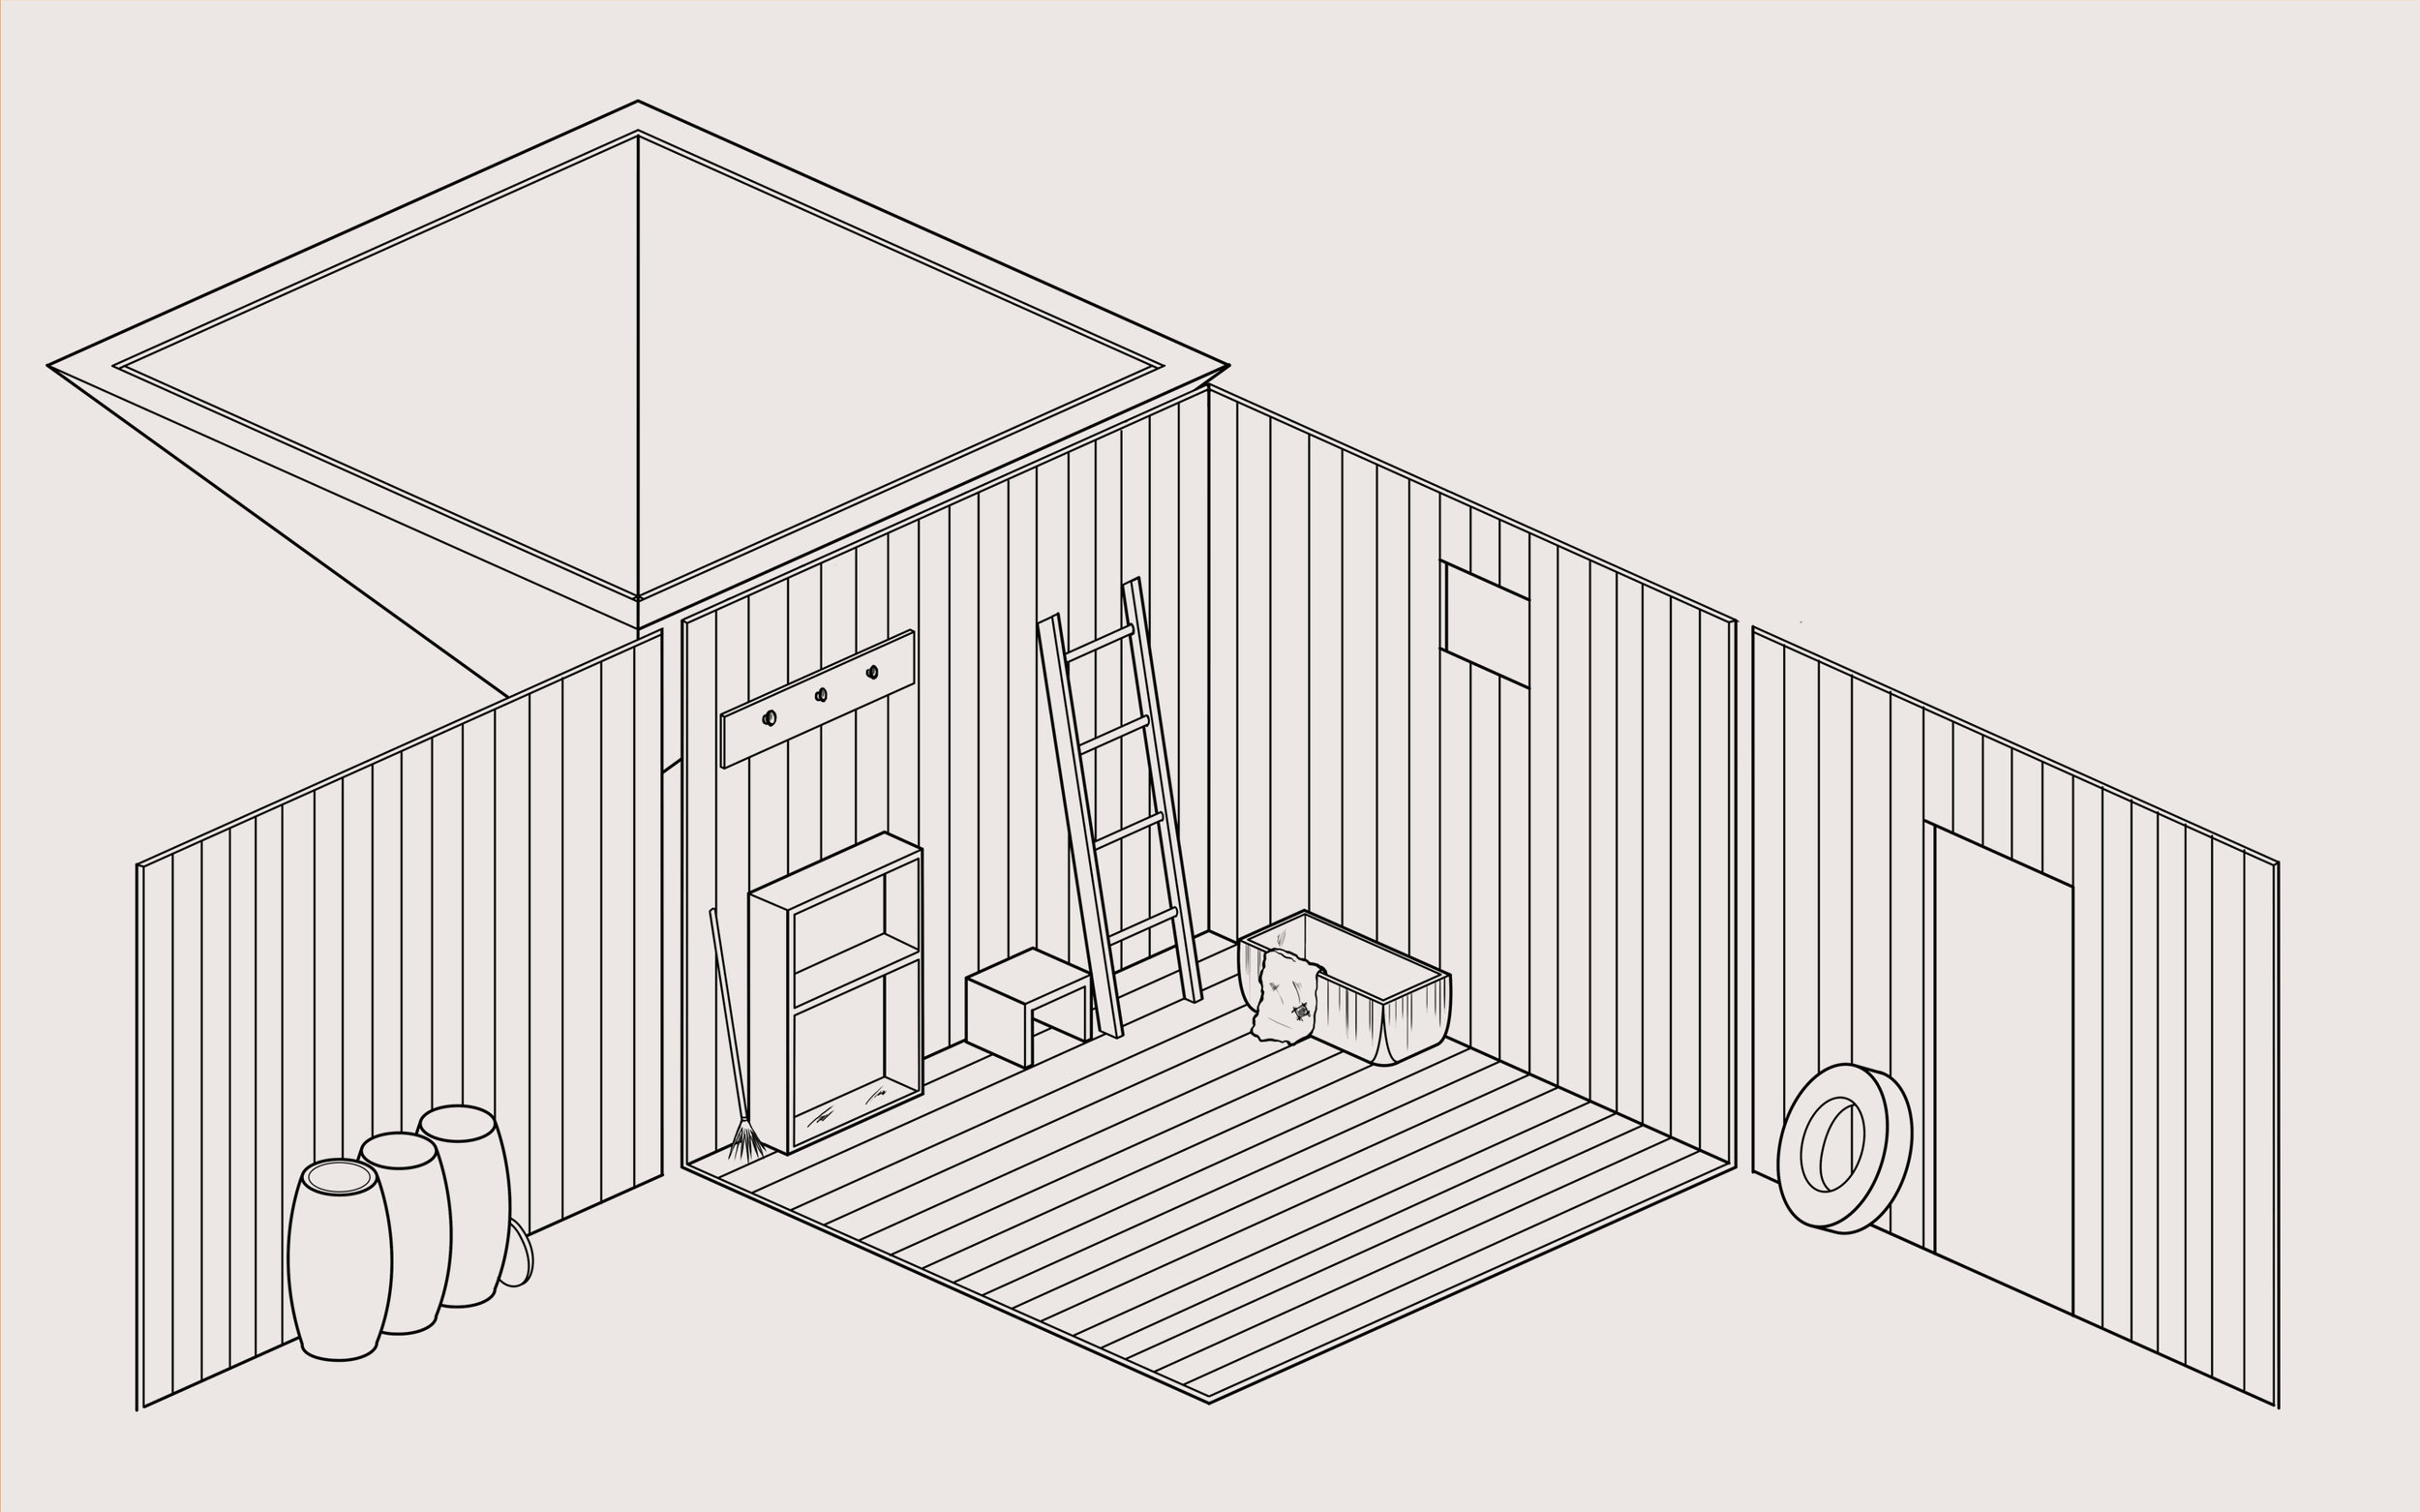 Small barn - details and layout